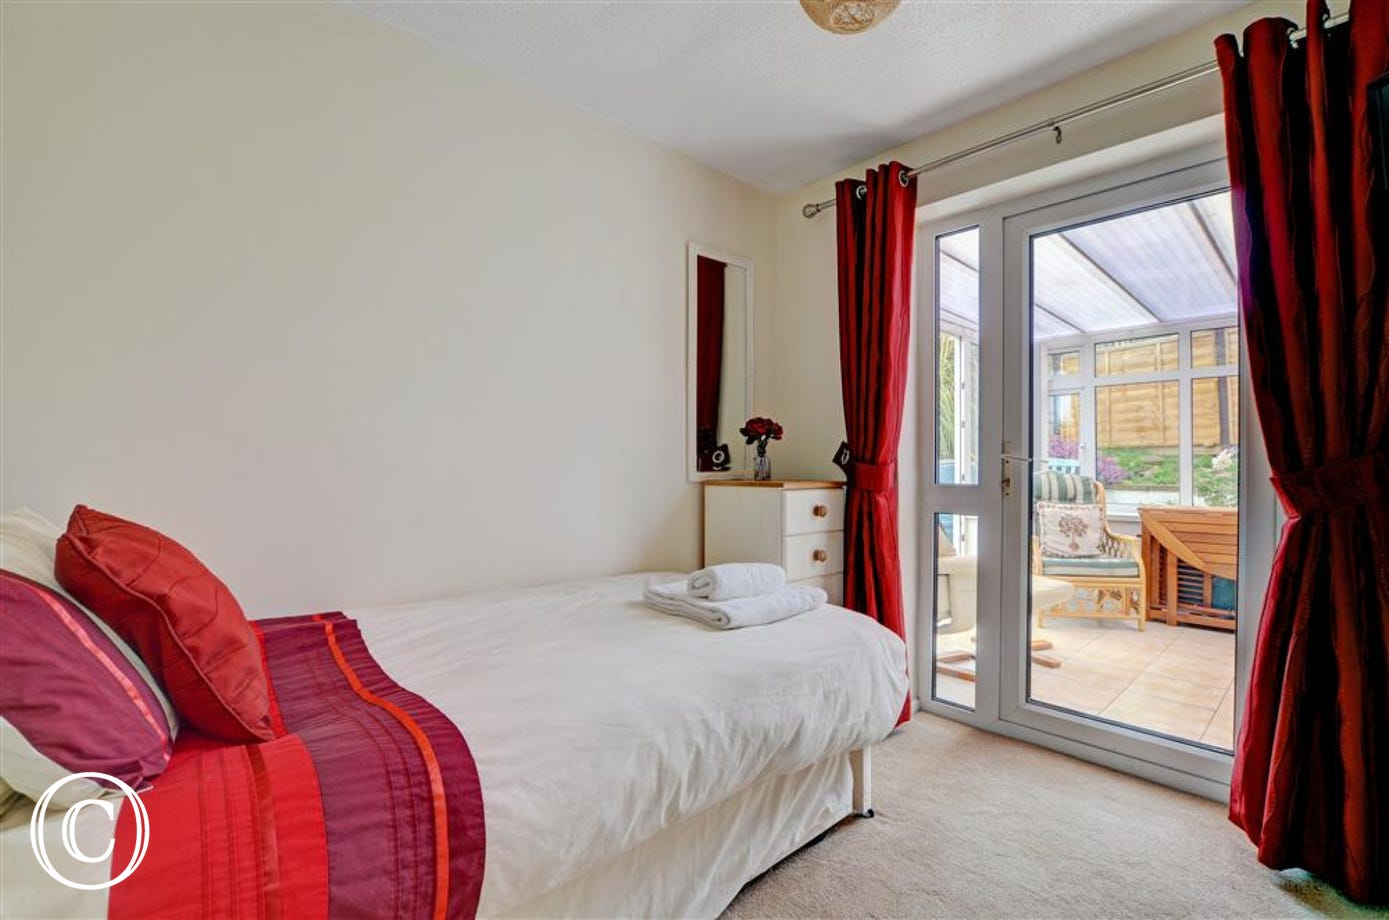 A single bedroom at the rear has a comfortable single pull out bed and leads into a conservatory with additional comfy seating